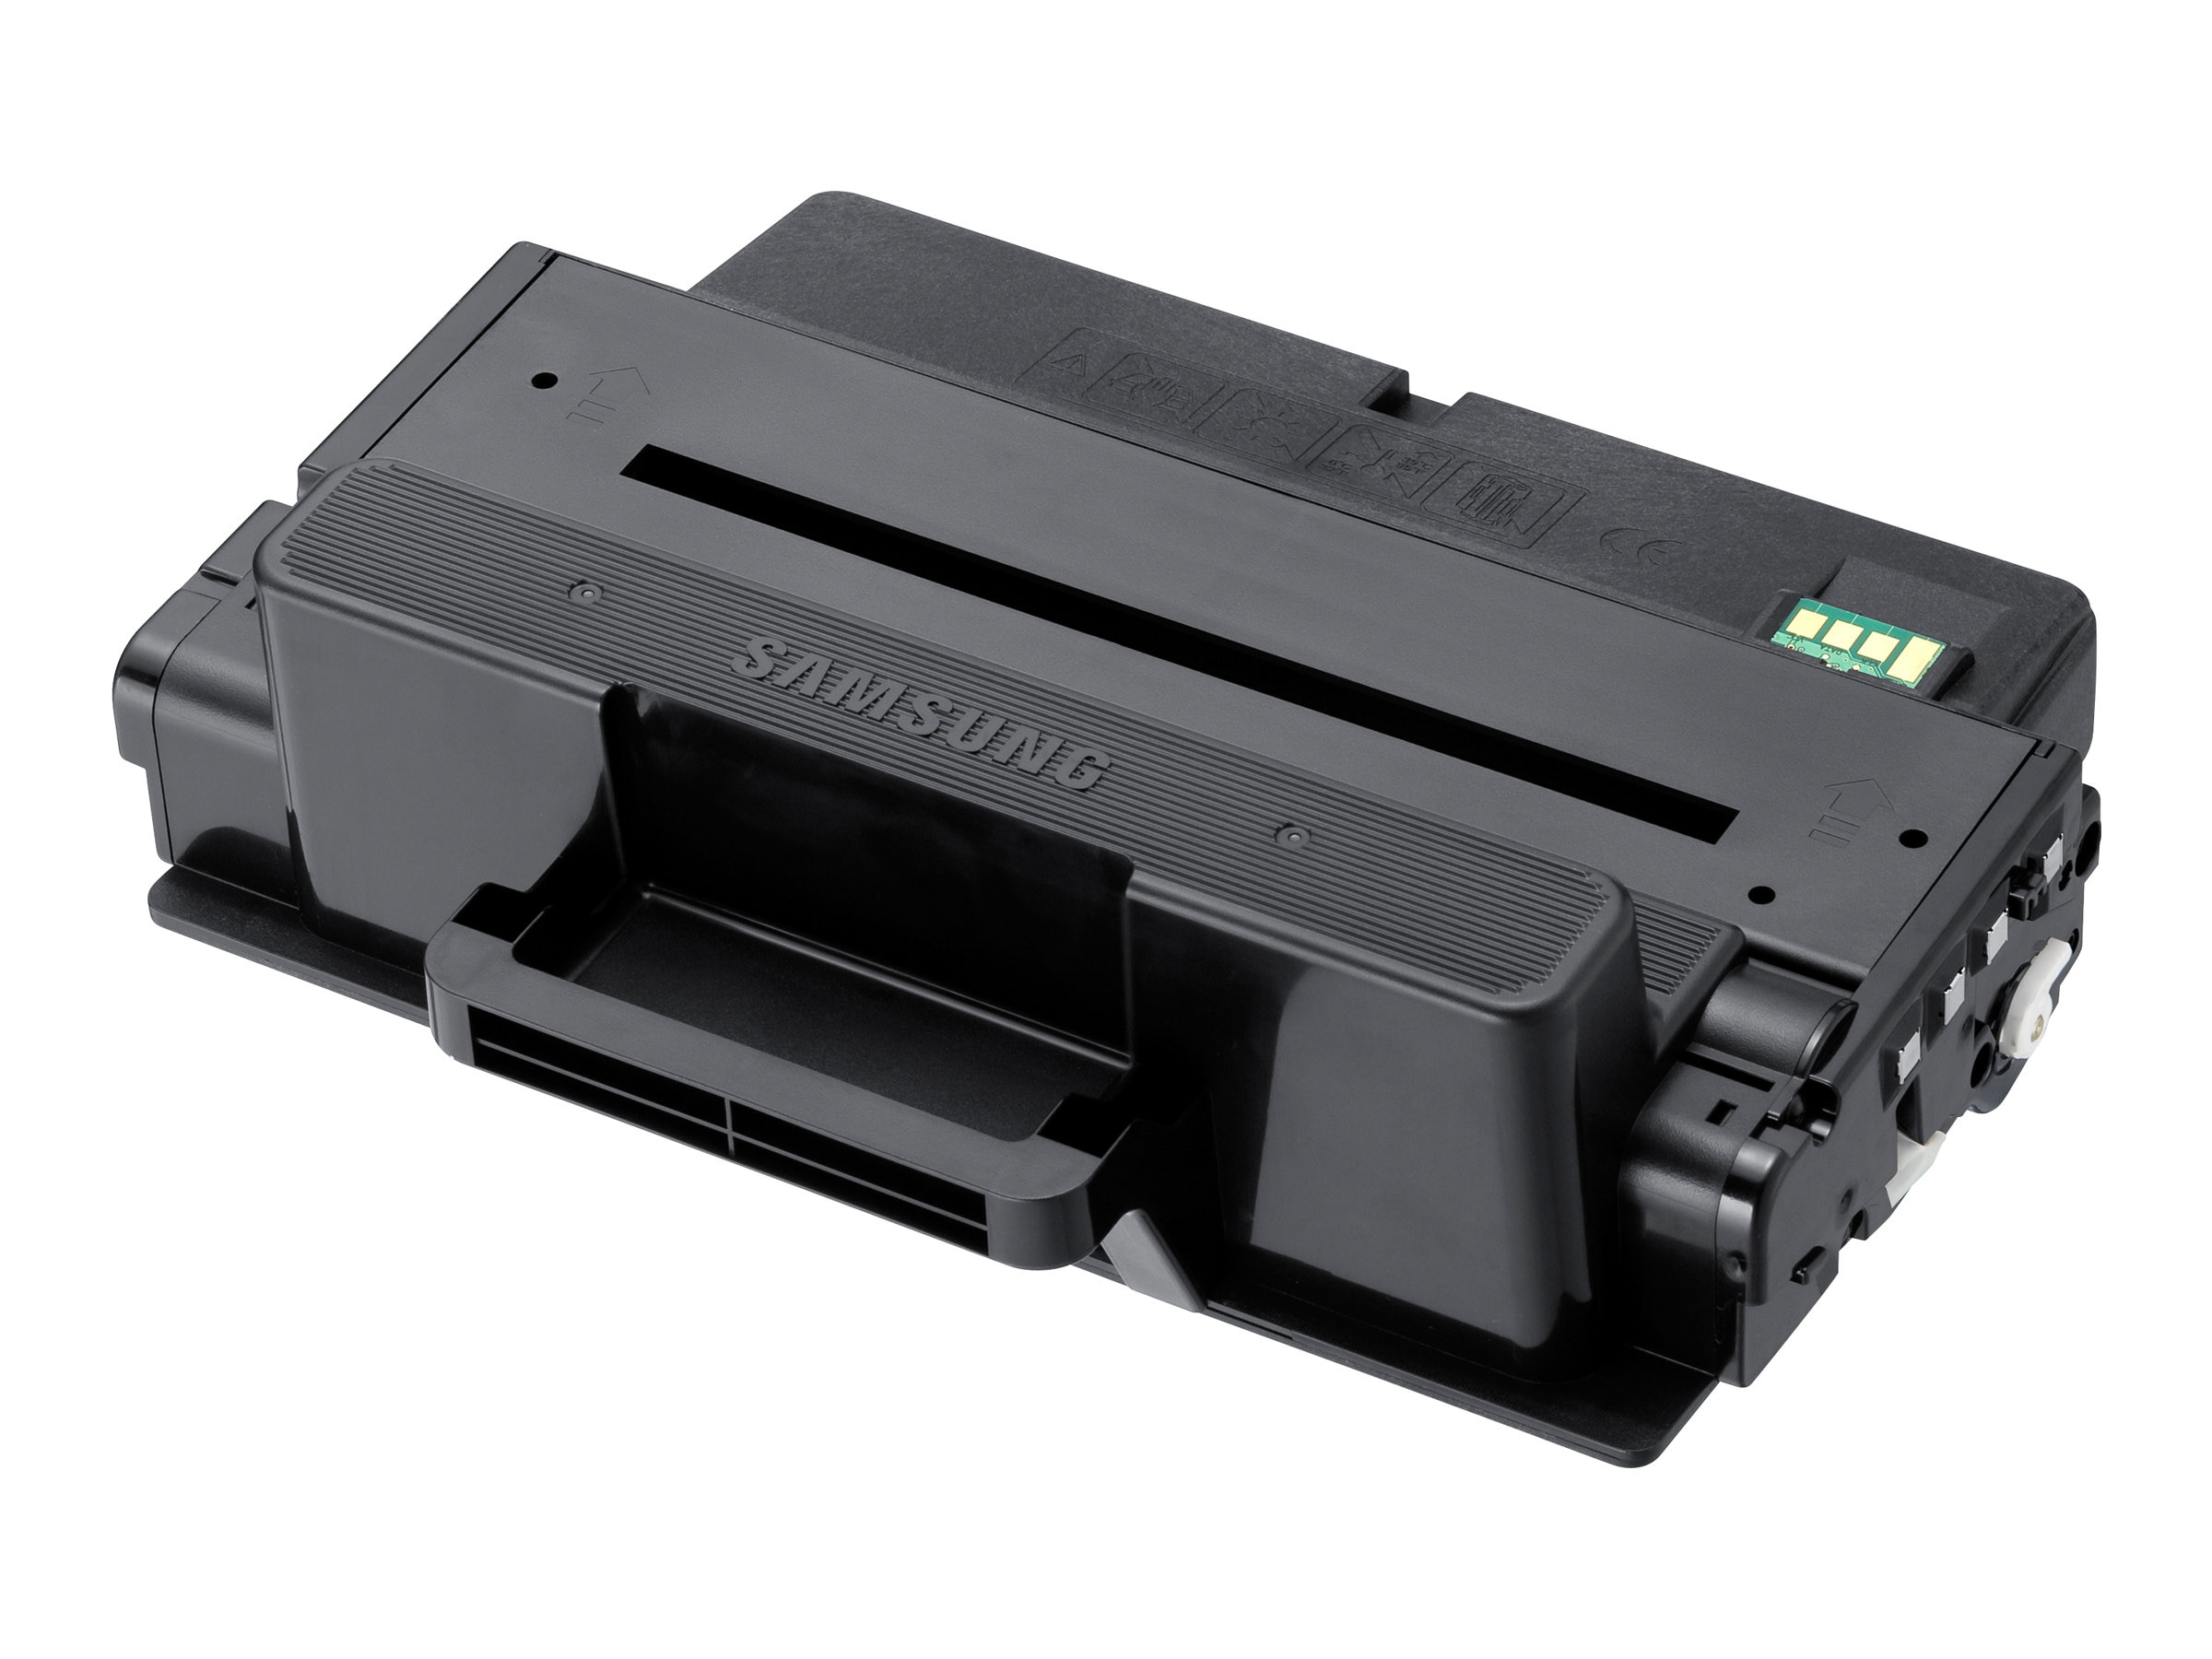 Samsung Black Extra High Yield Toner Cartridge for ML-3712ND Printer